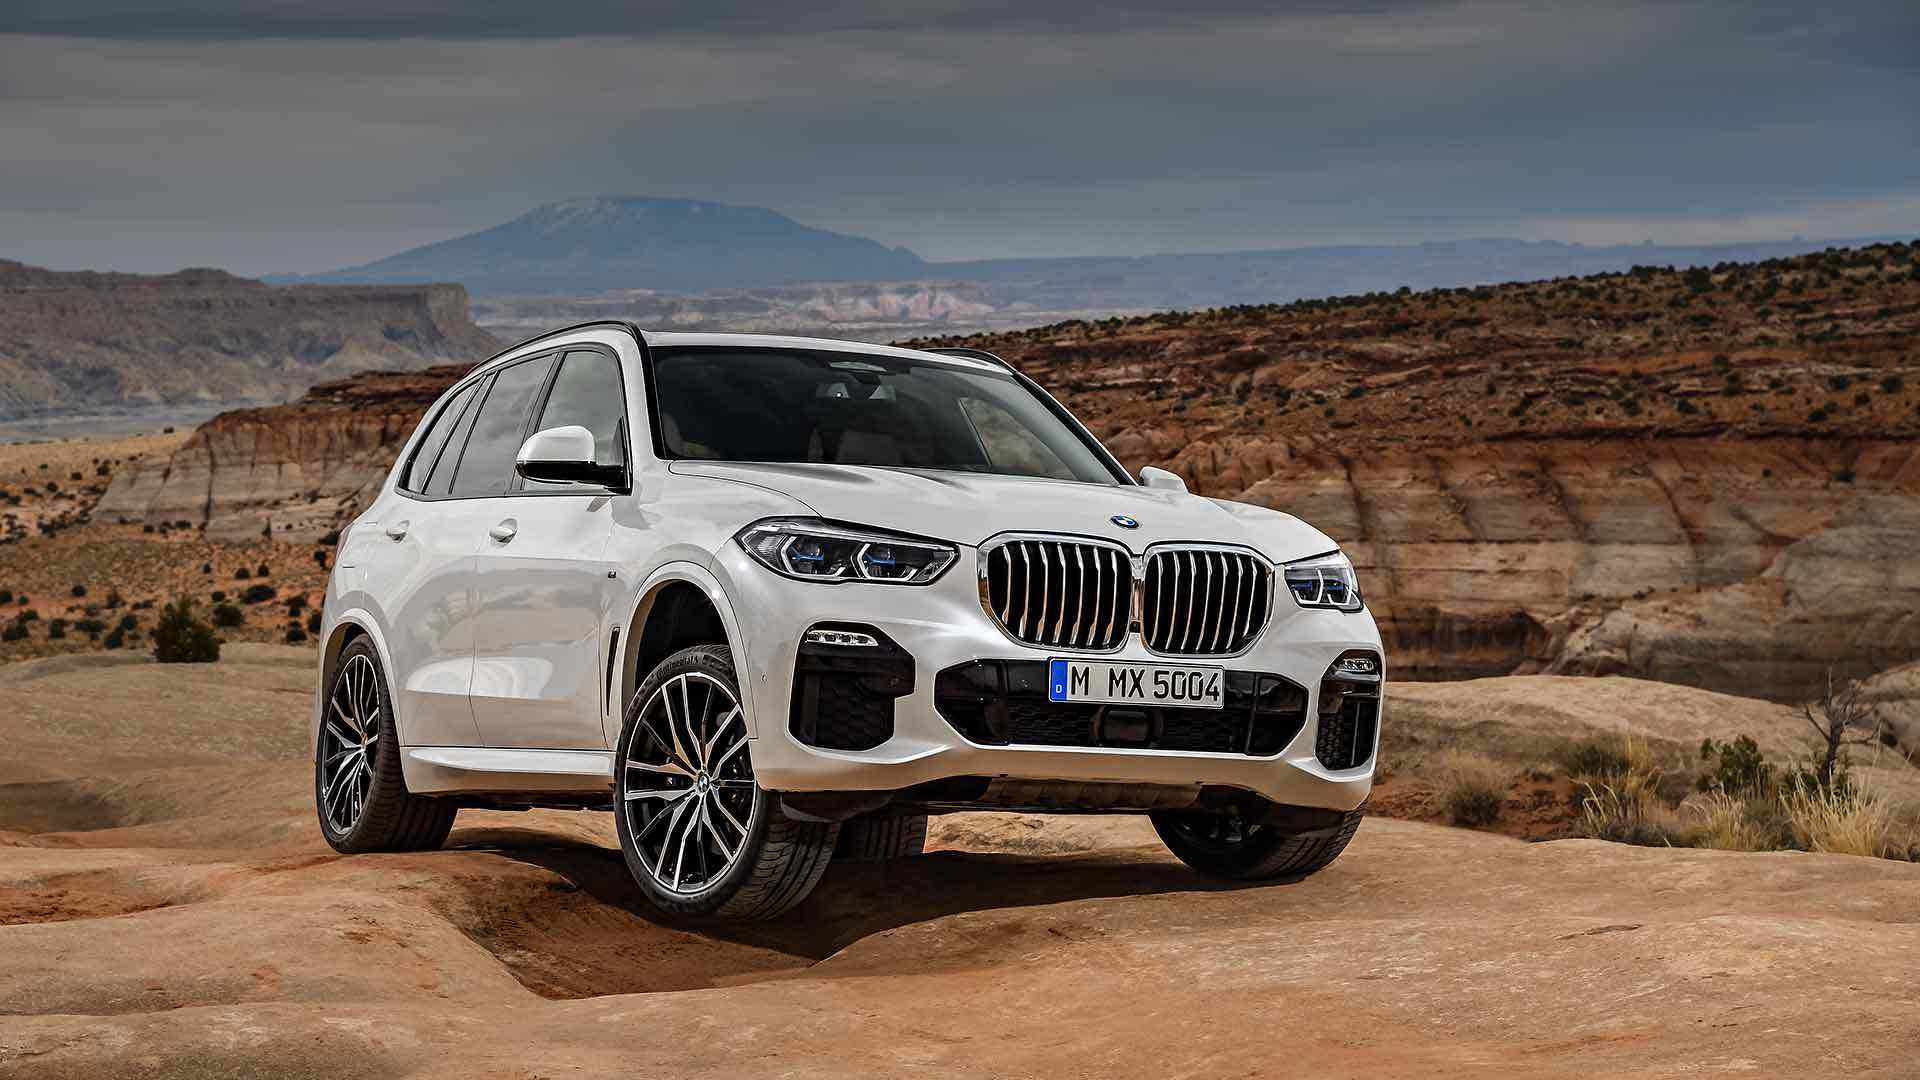 94 Gallery of 2019 Bmw Suv Ratings for 2019 Bmw Suv